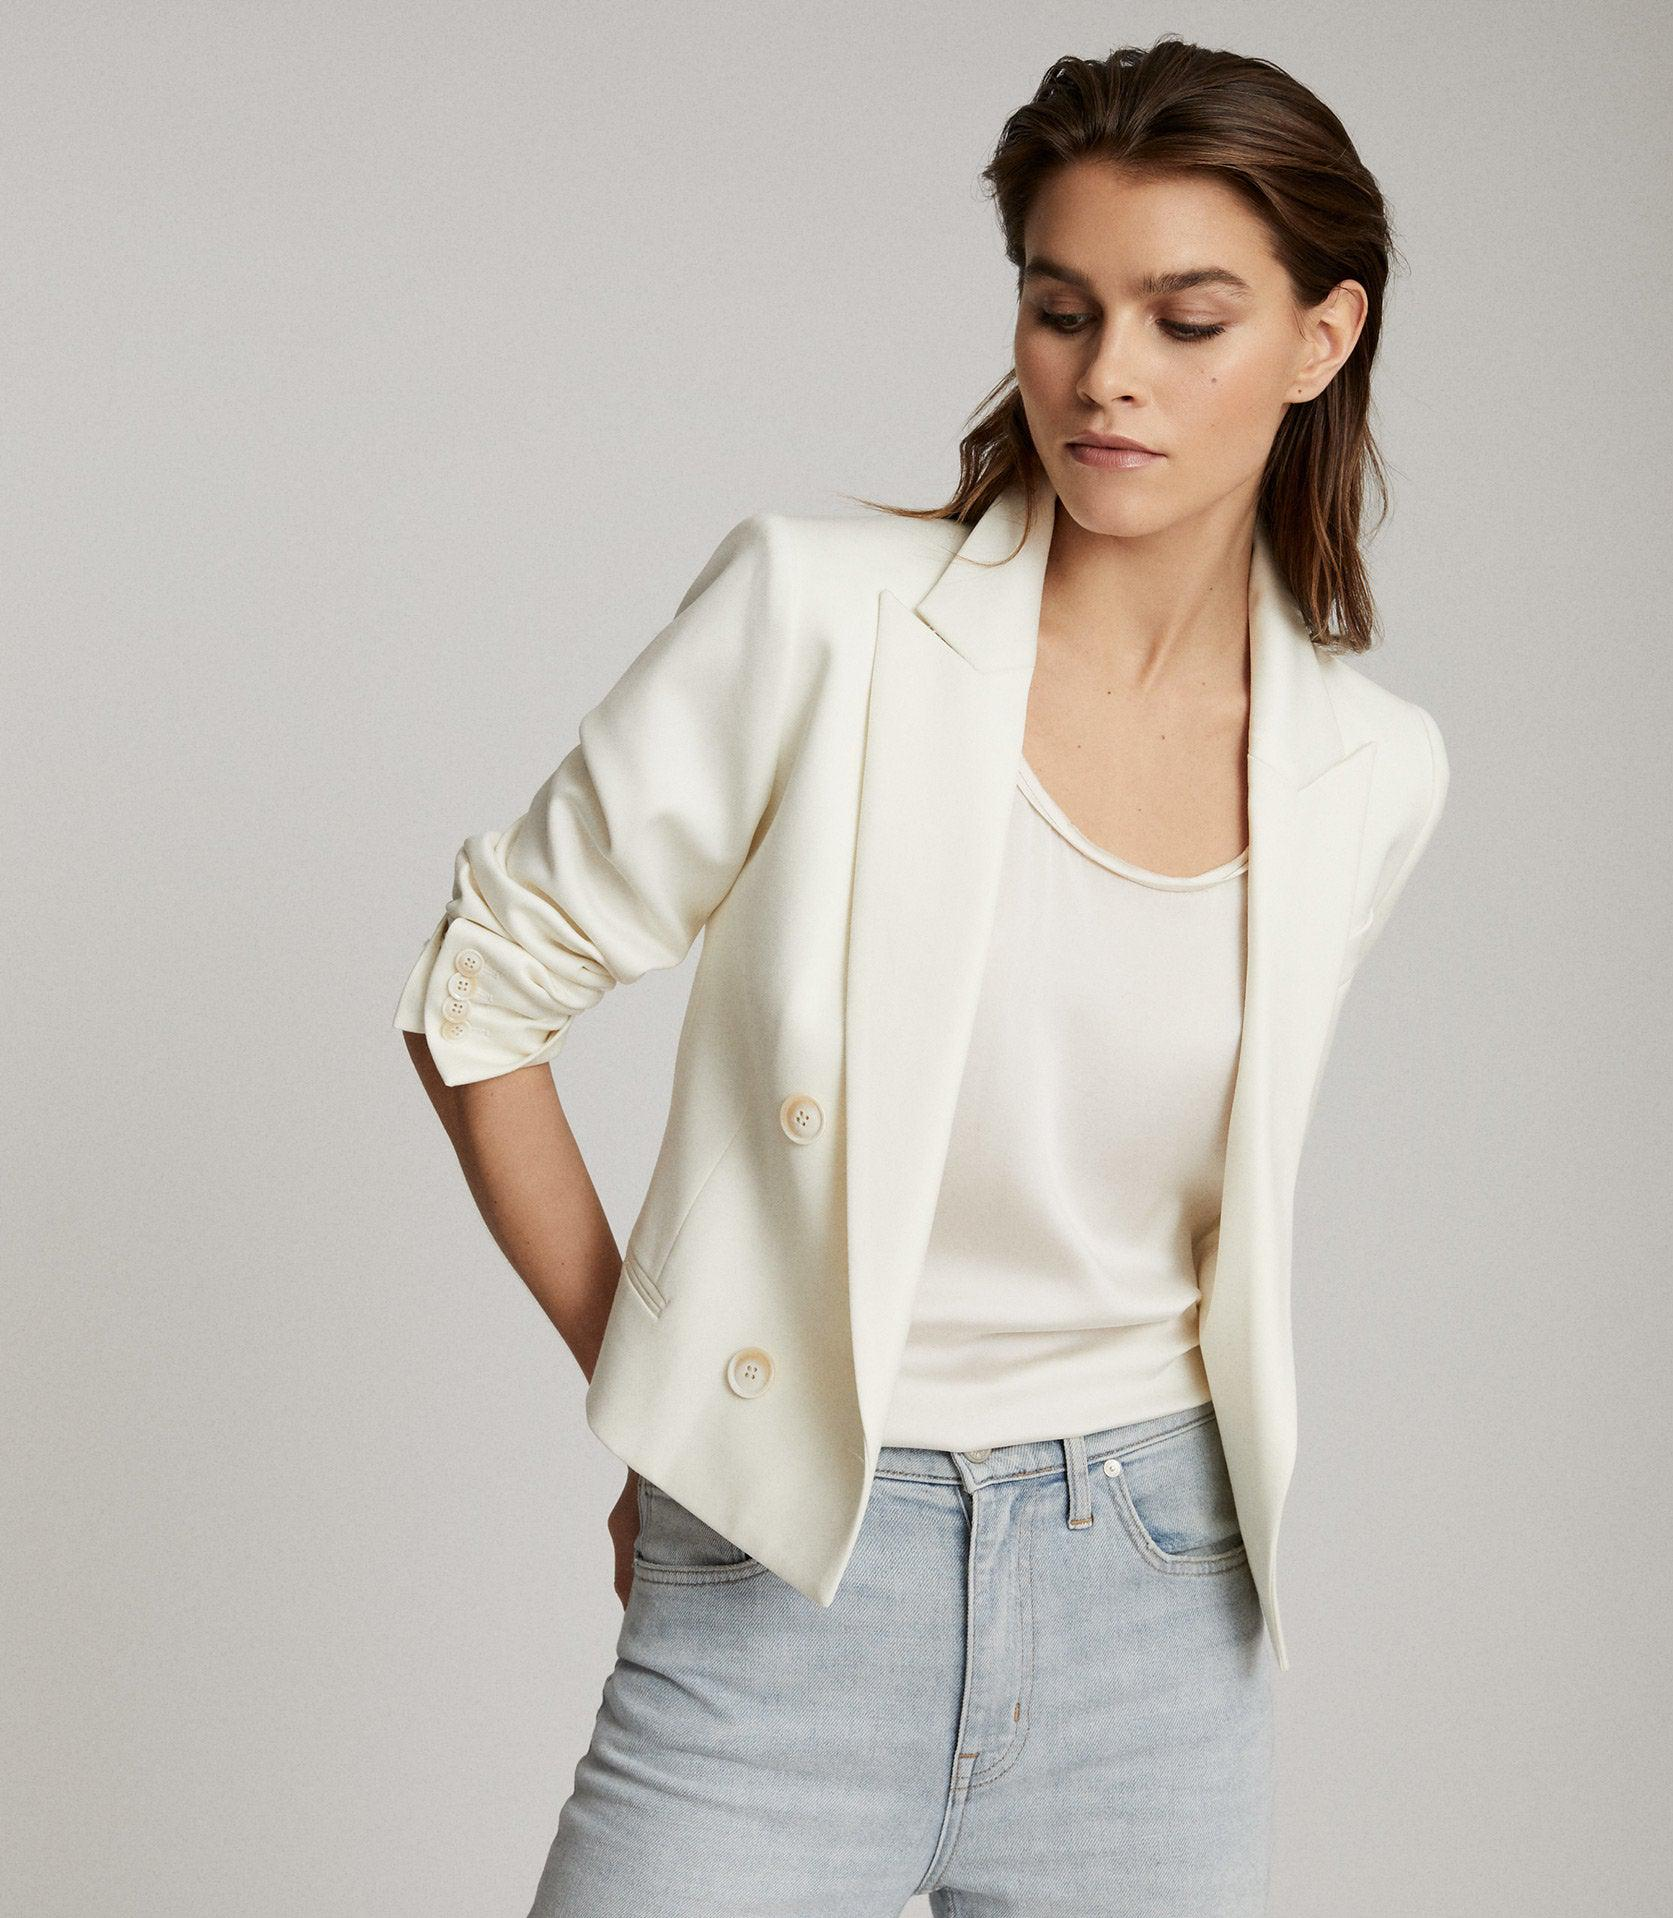 ALEIDA - CROPPED DOUBLE BREASTED BLAZER 1